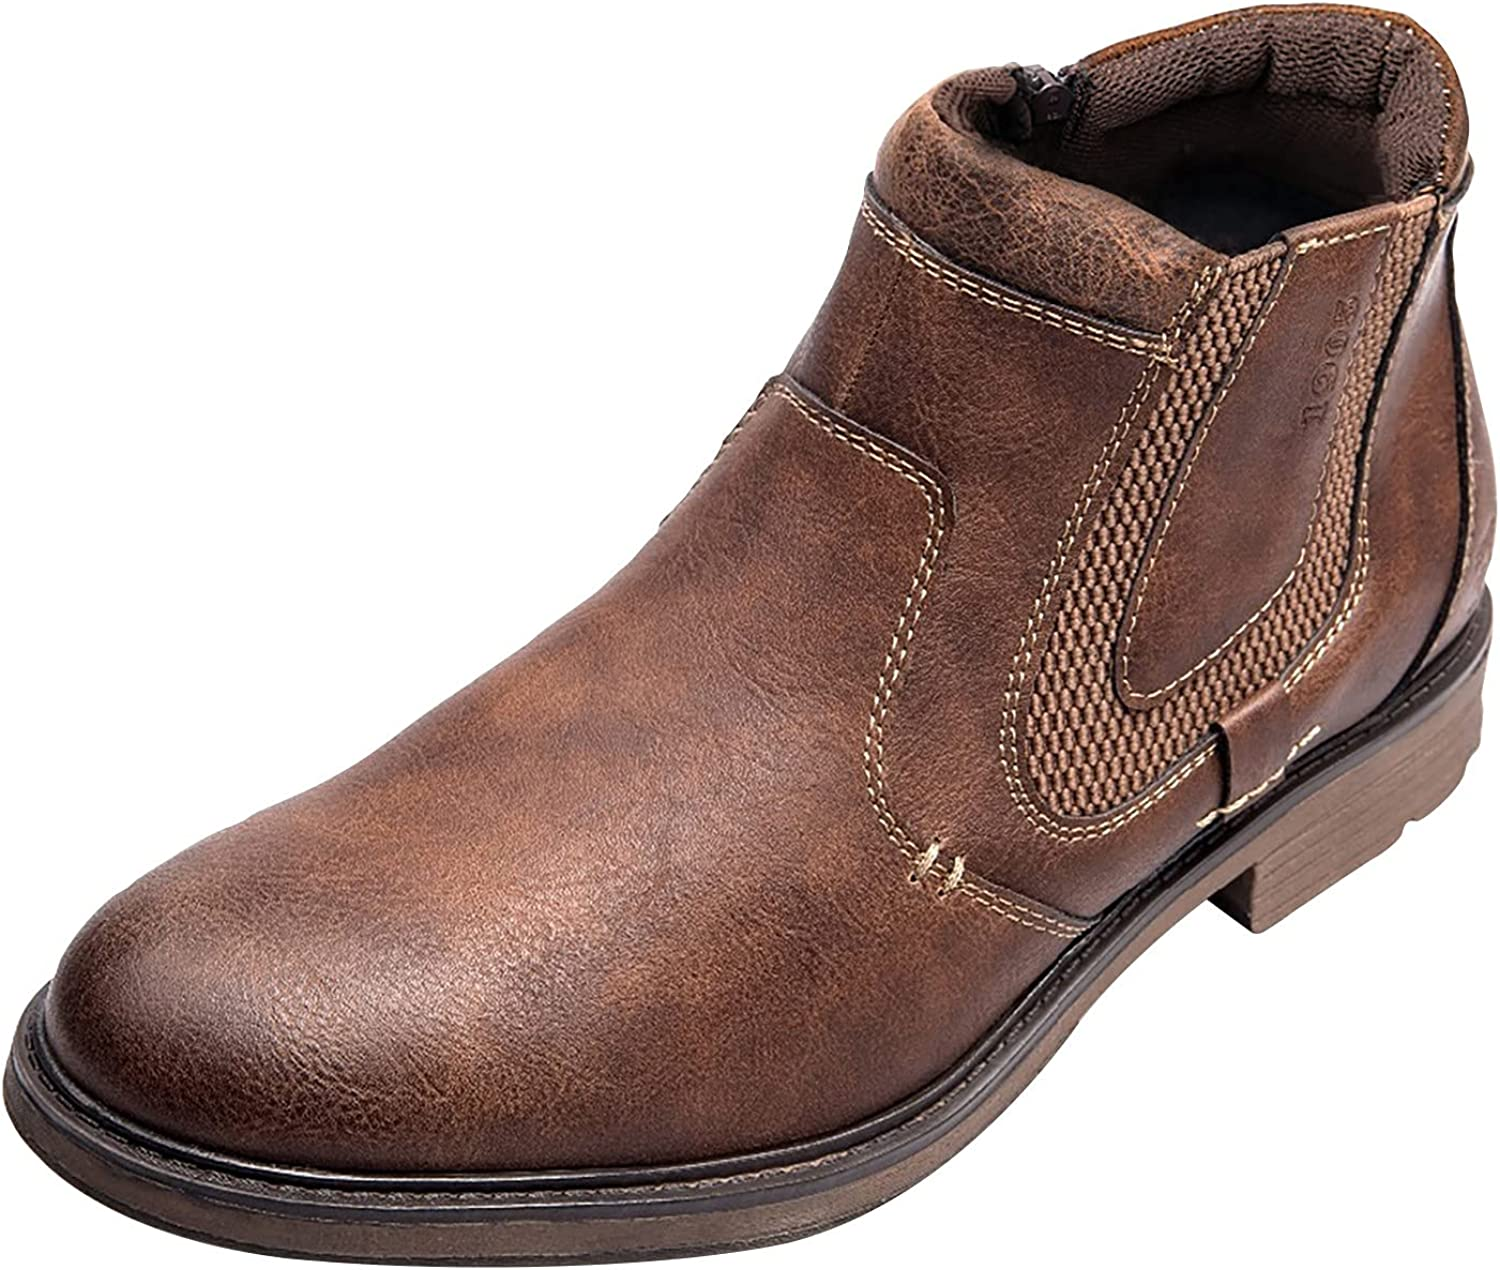 SALENEW very popular! DKBL Boots for Men Ankle New mail order Slip-on Top Leather Shoes Bo High